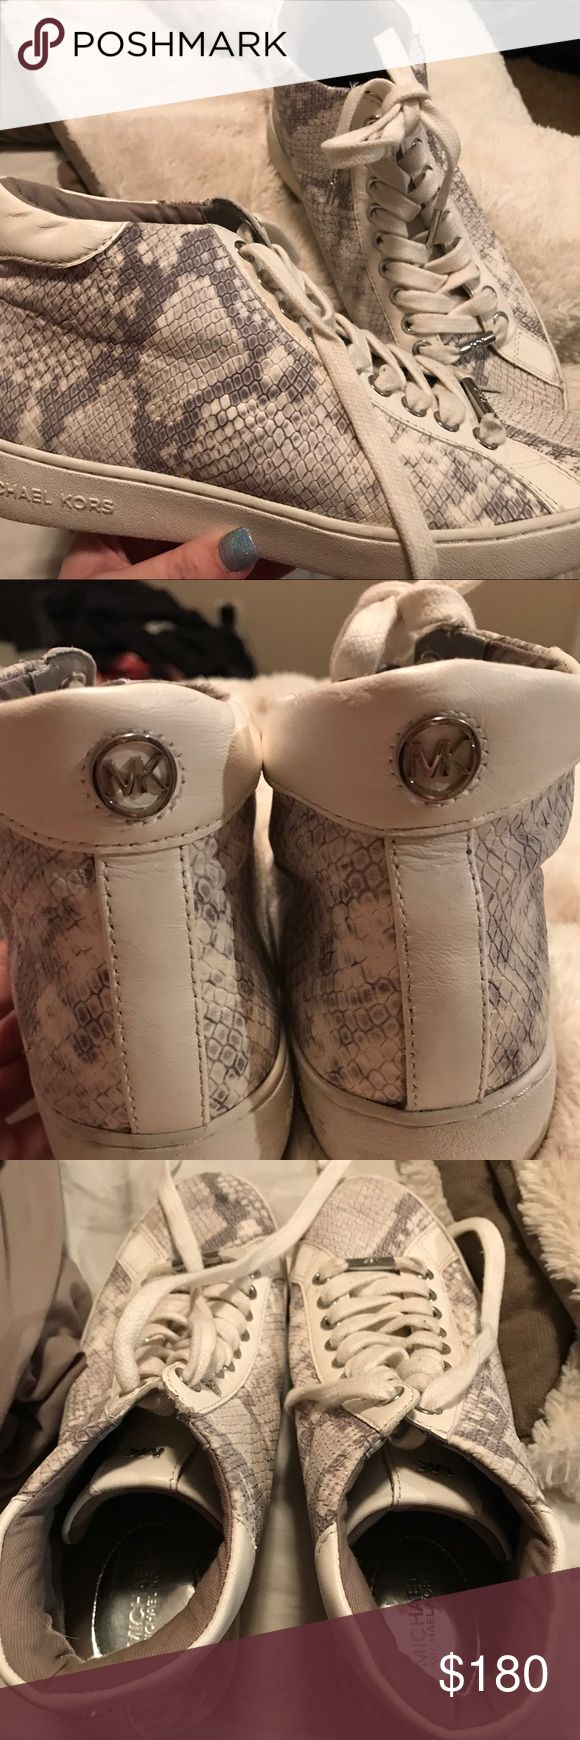 Michael Kors high-top tennis shoes White, high-top, only worn twice, excellent condition, VERY comfortable. A little marks on the shoe laces, and on the bottom/very back of the shoe but I will clean those off. Paid a lot at the Michael Kors store at Caesers Palace. Michael Kors Shoes Sneakers